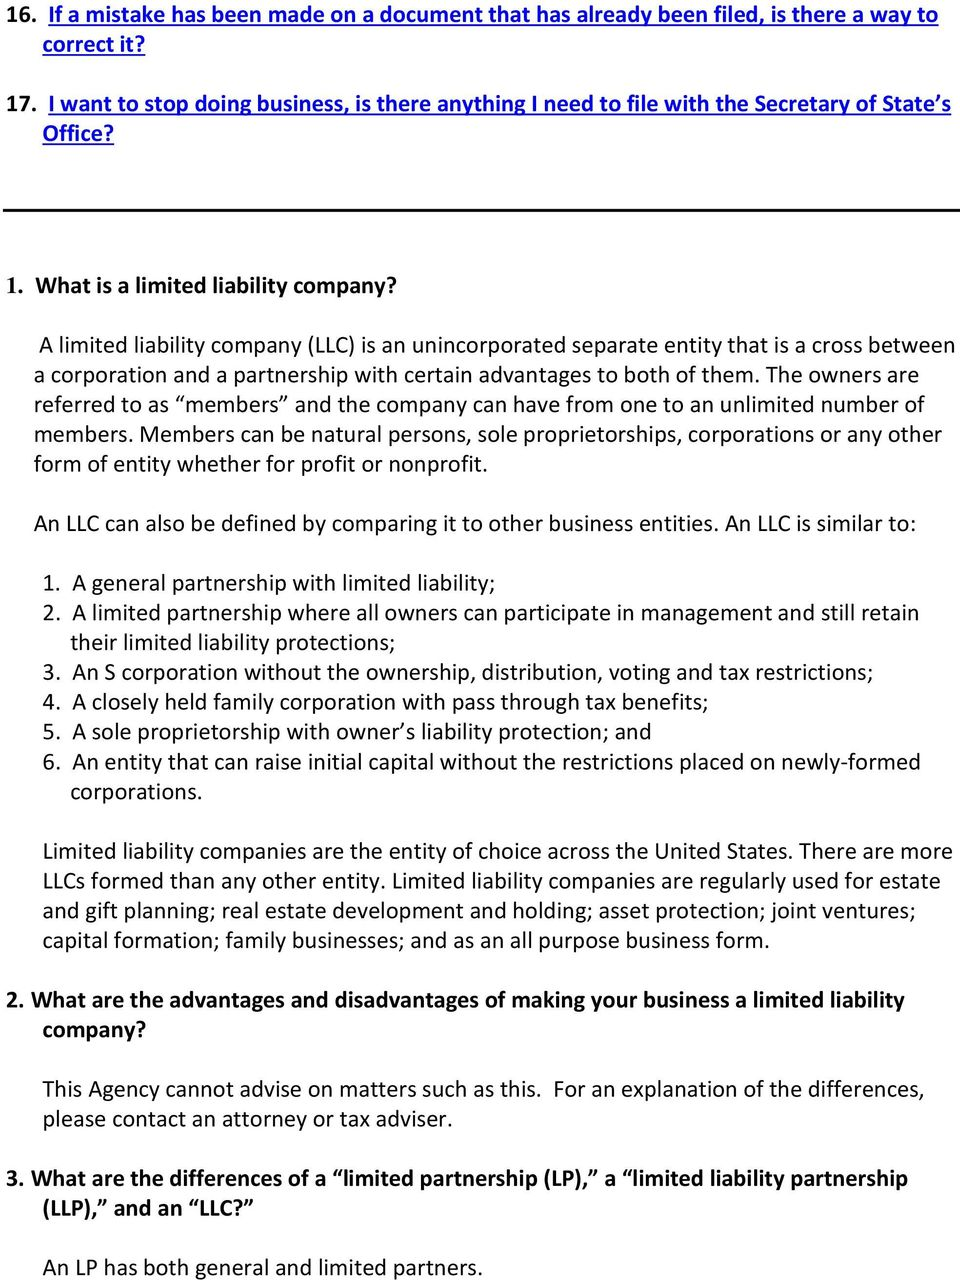 limited liability company frequently asked questions - pdf